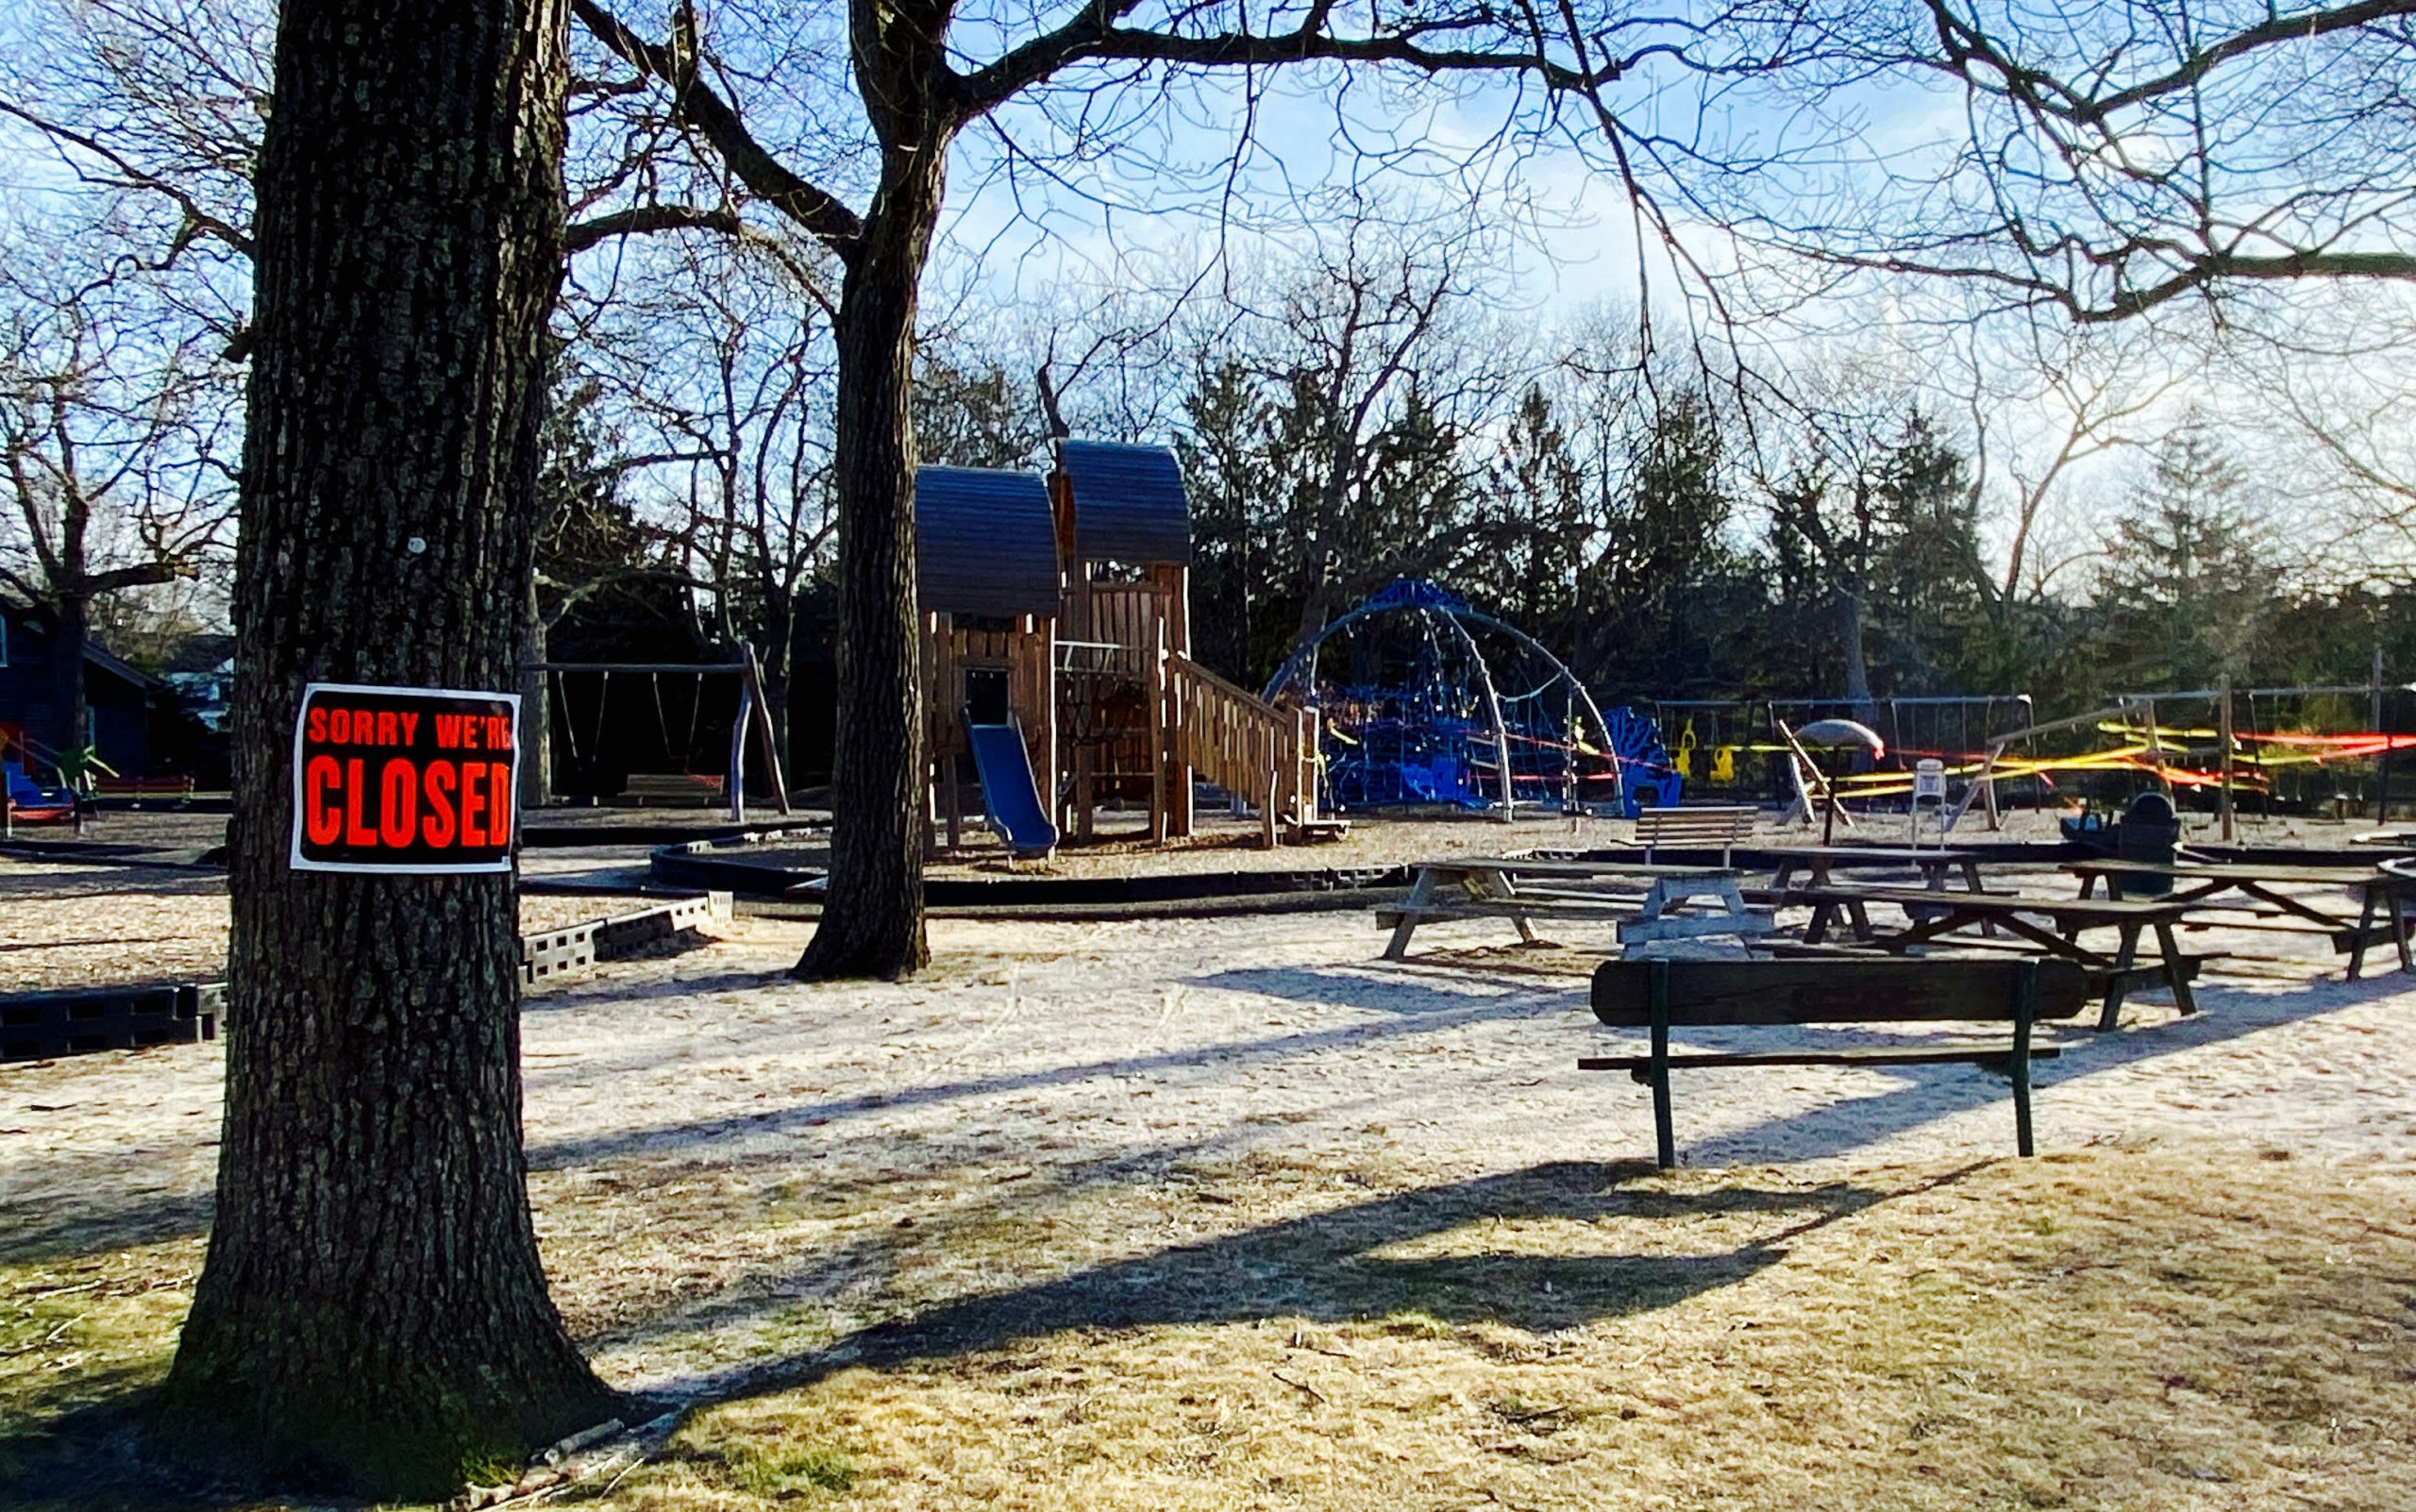 Mashashimuet Park's playground, like all playgrounds, is closed to promite social distancing.